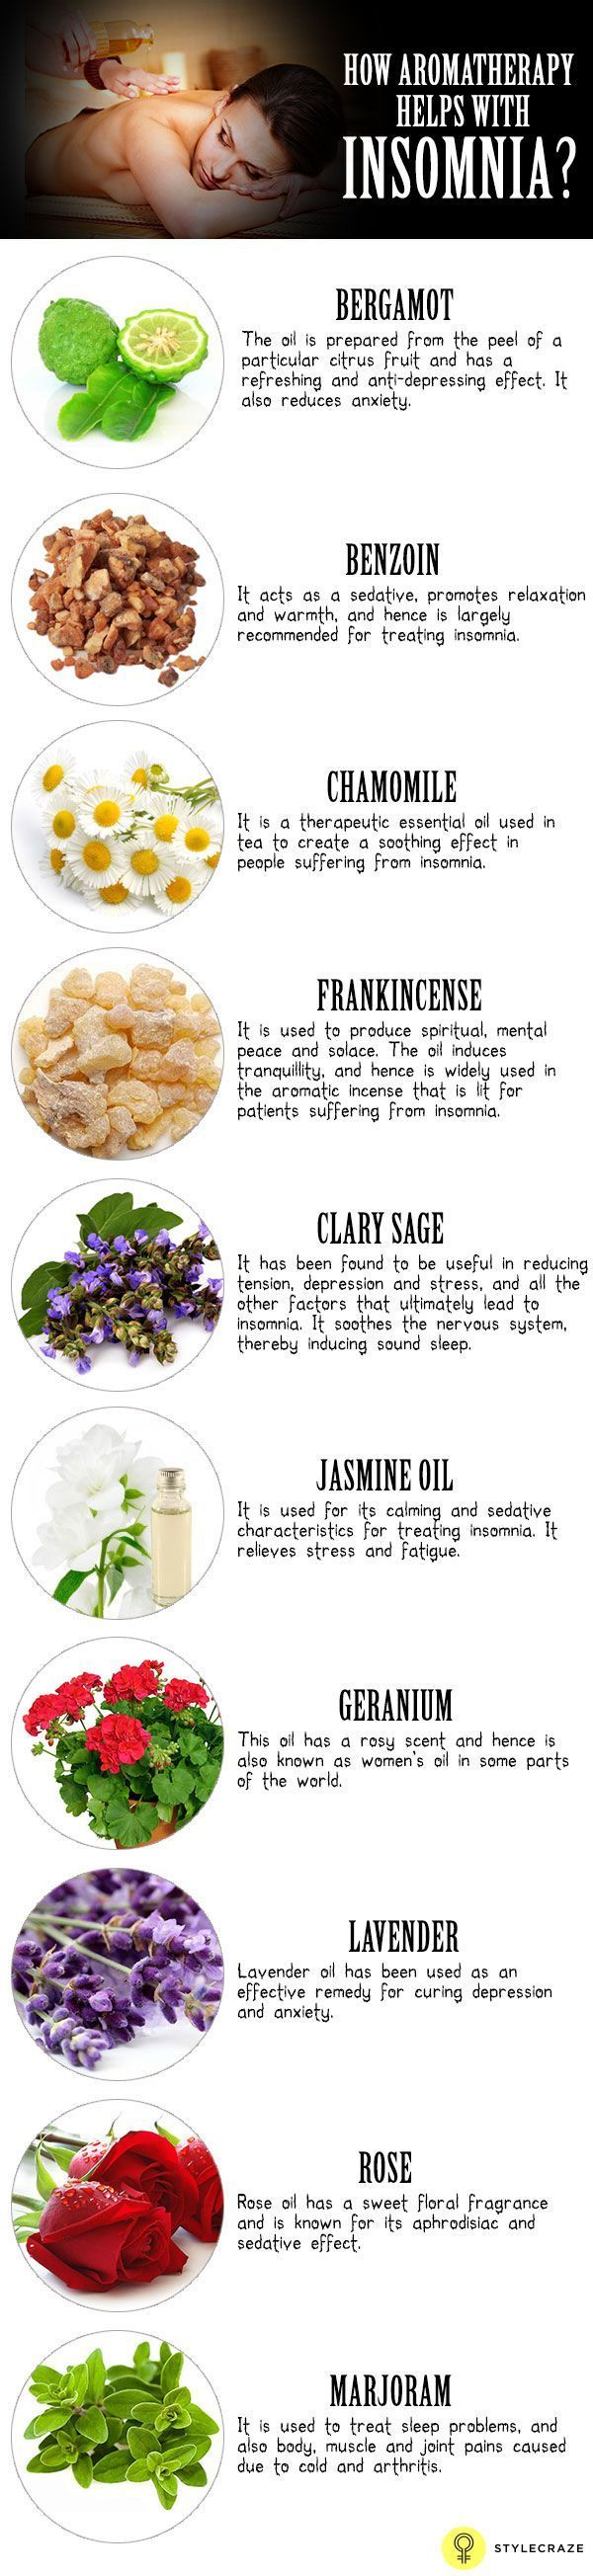 Aromatherapy For Insomnia Or Sleeping Disorders